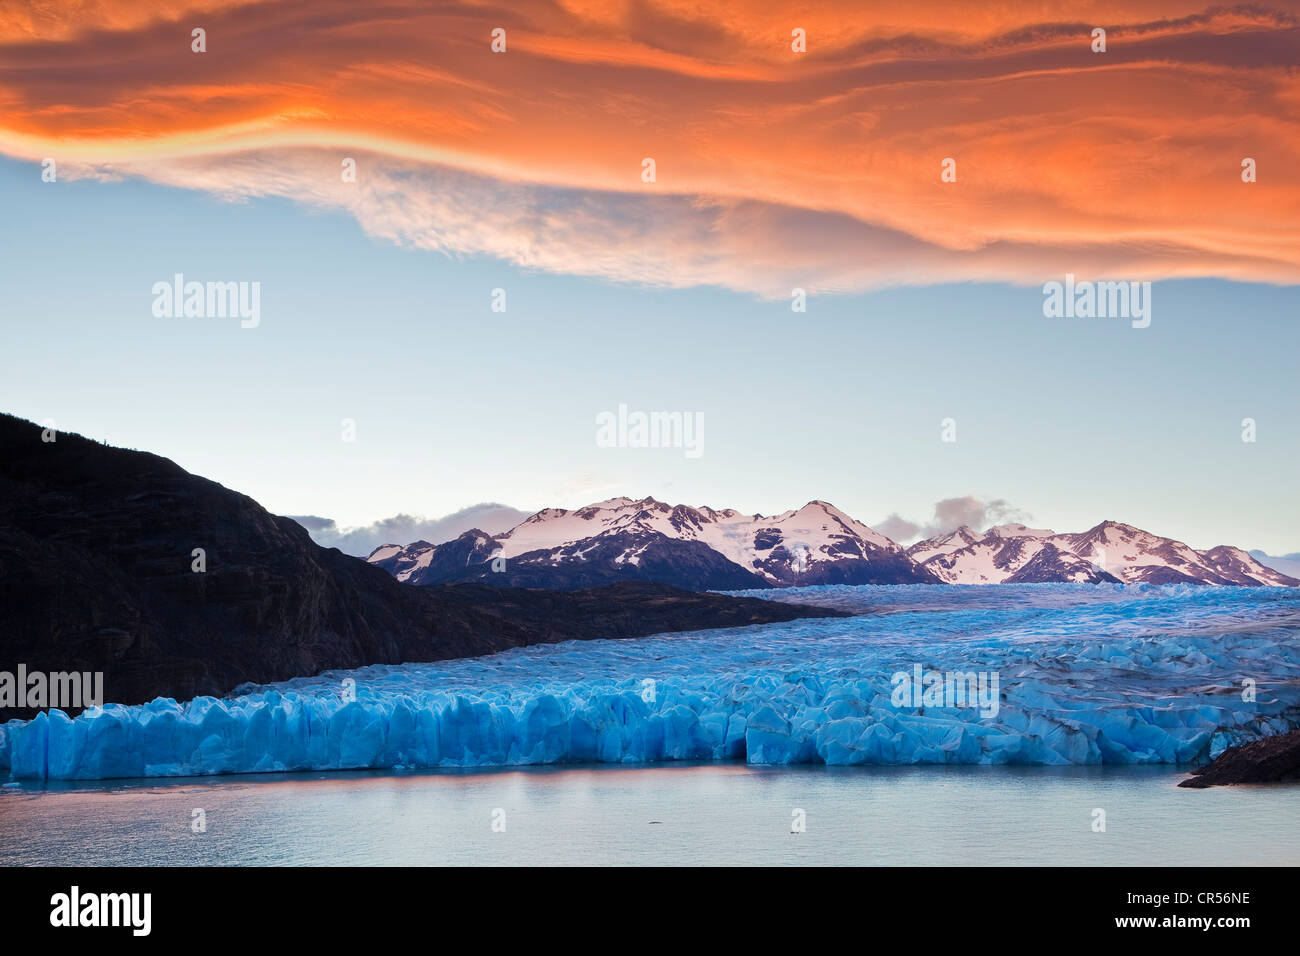 Grey Glacier, Torres del Paine National Park, Patagonia, South America - Stock Image